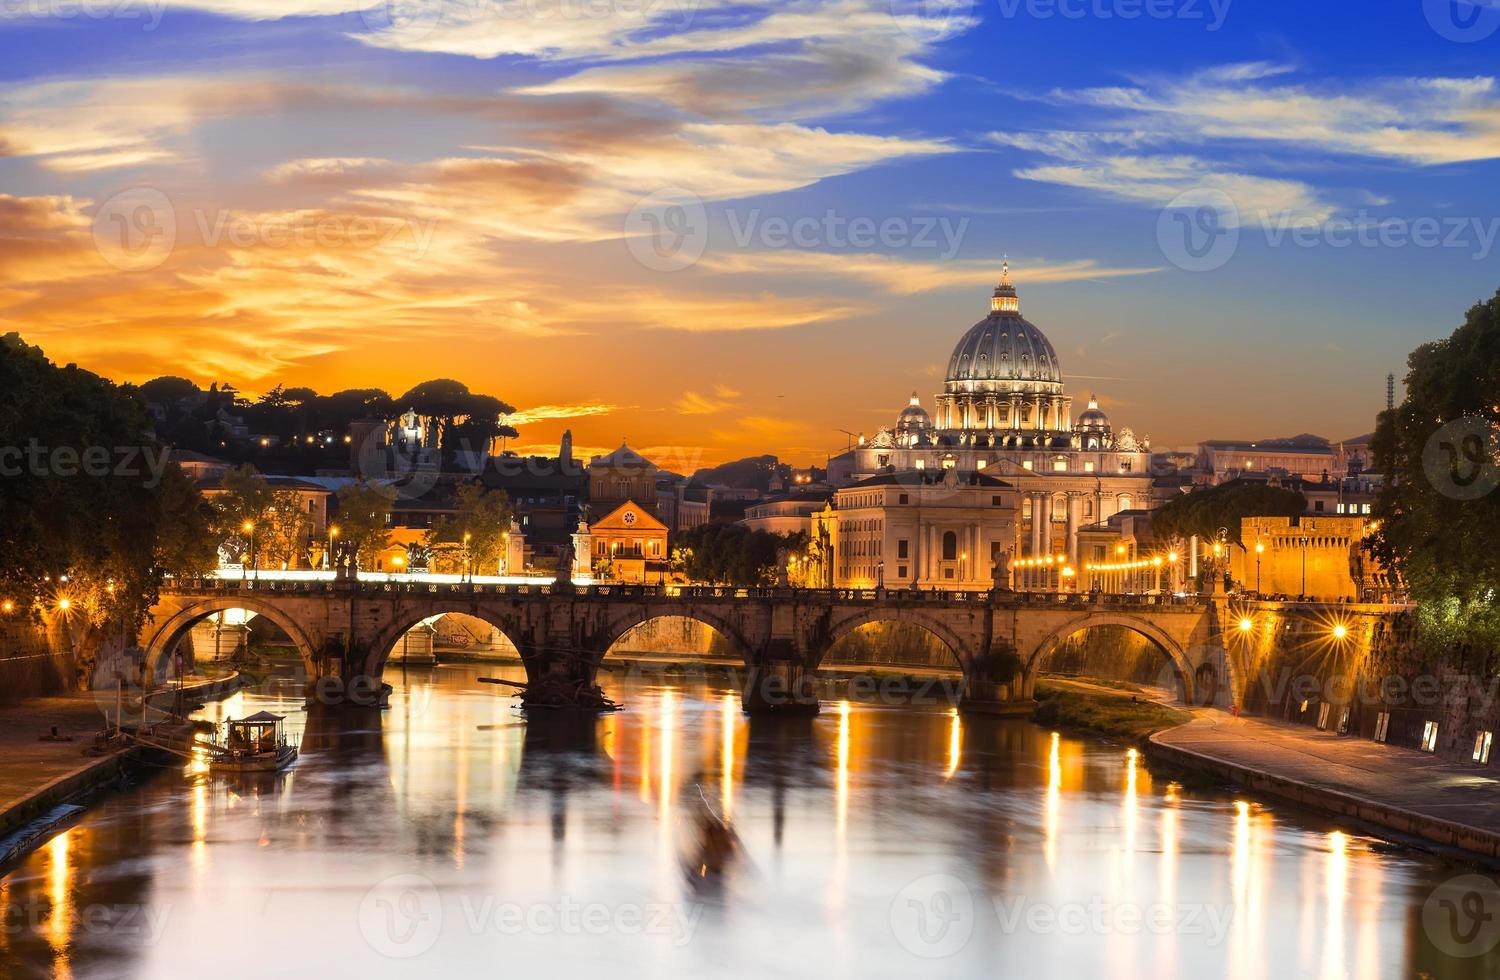 Basilica St Peter and river Tiber in Rome photo